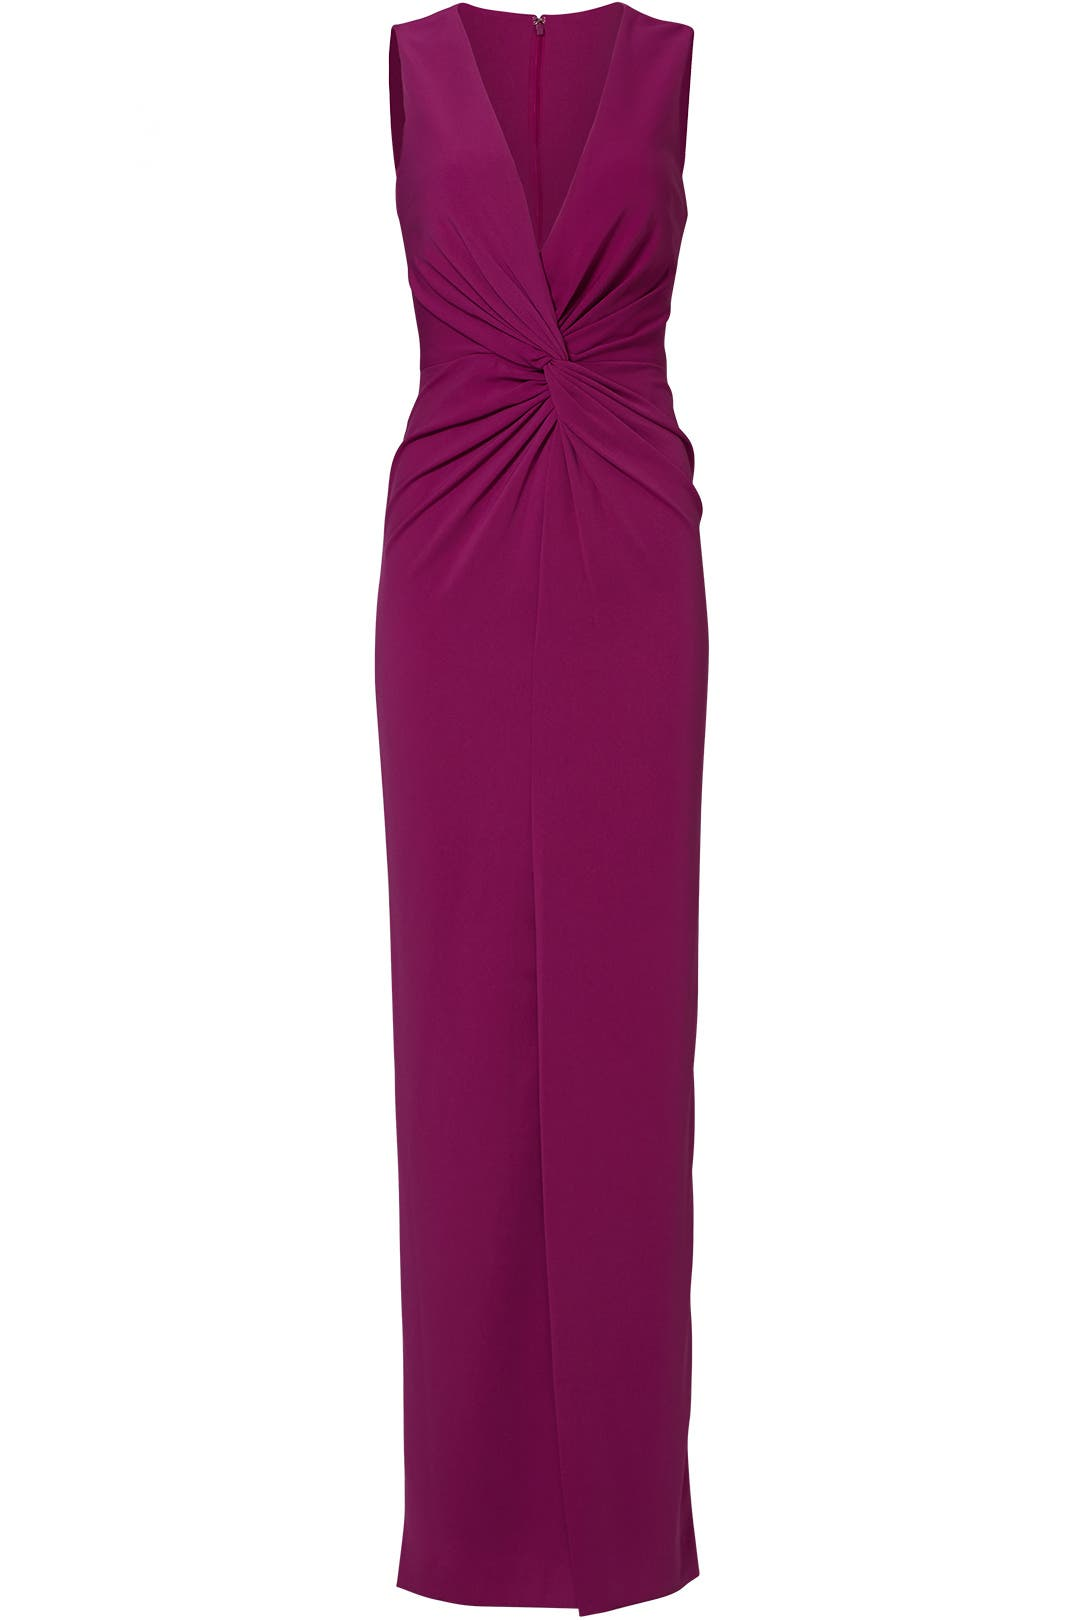 Orchid Twist Front Gown by Badgley Mischka for $70 - $90 | Rent the ...